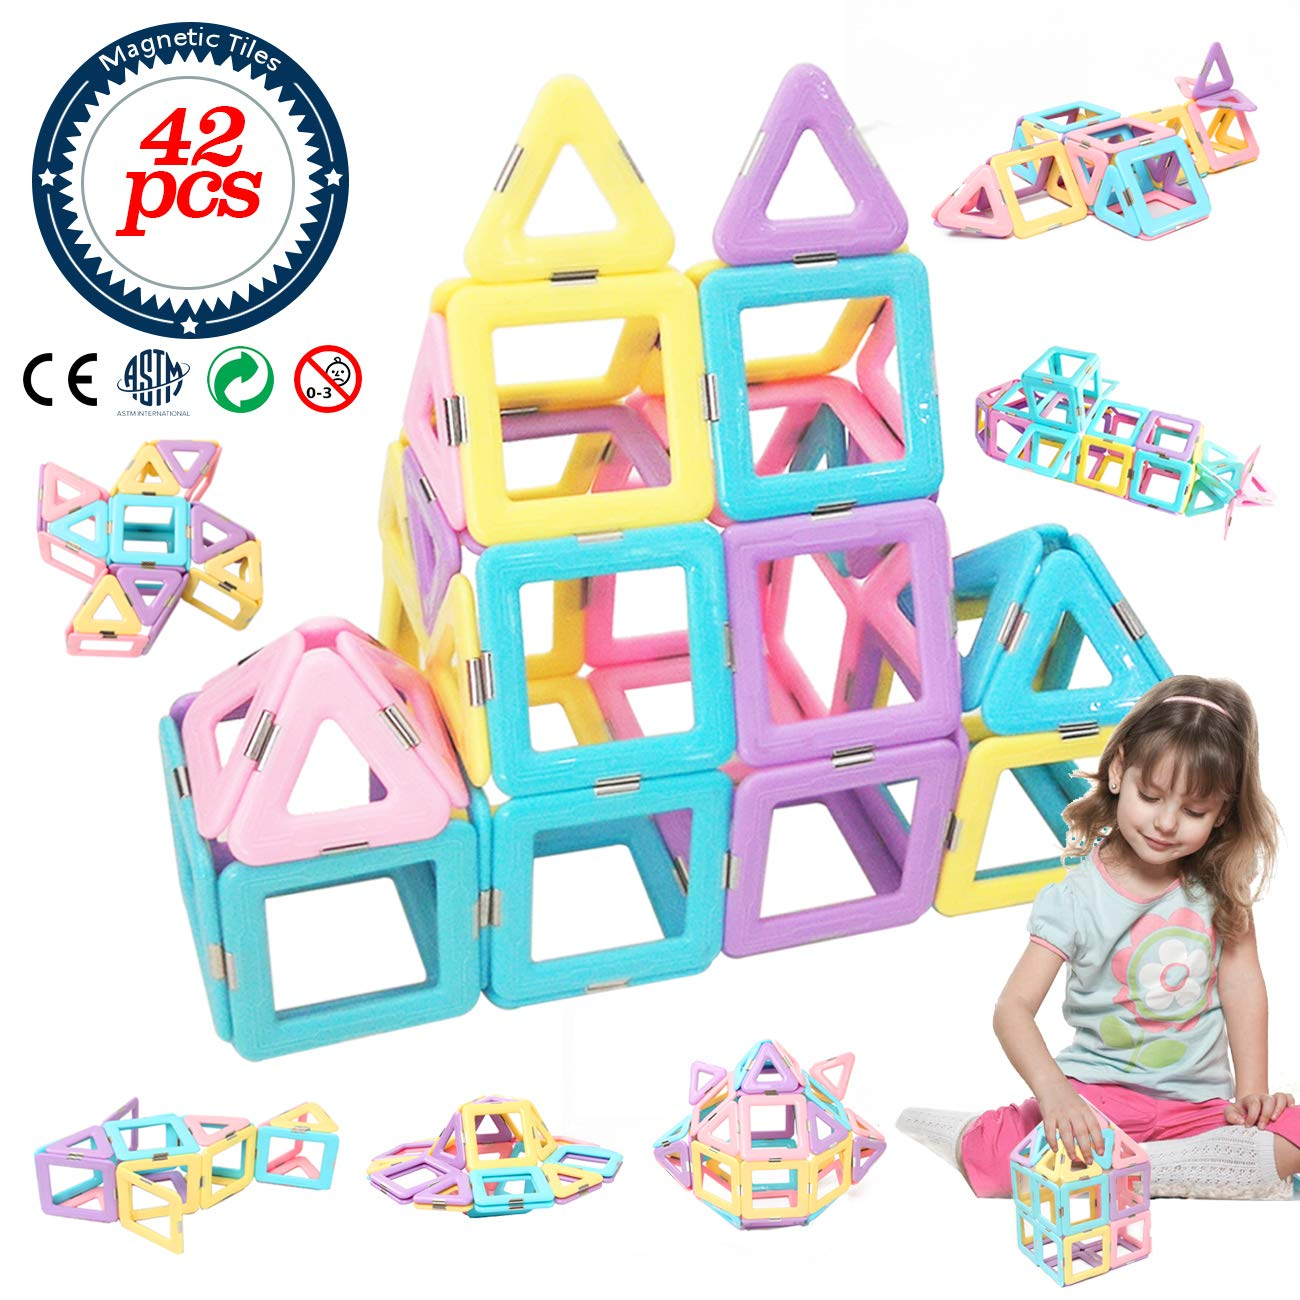 HLAOLA Magnetic Blocks Upgrade Magnetic Building Blocks Magnetic Tiles Educational Toys Tiles Set for Kids Magnet Stacking Toys for Kids Children Age 3 4 5 6 7  Year Old (Expansion Package )-42 PCS by HLAOLA